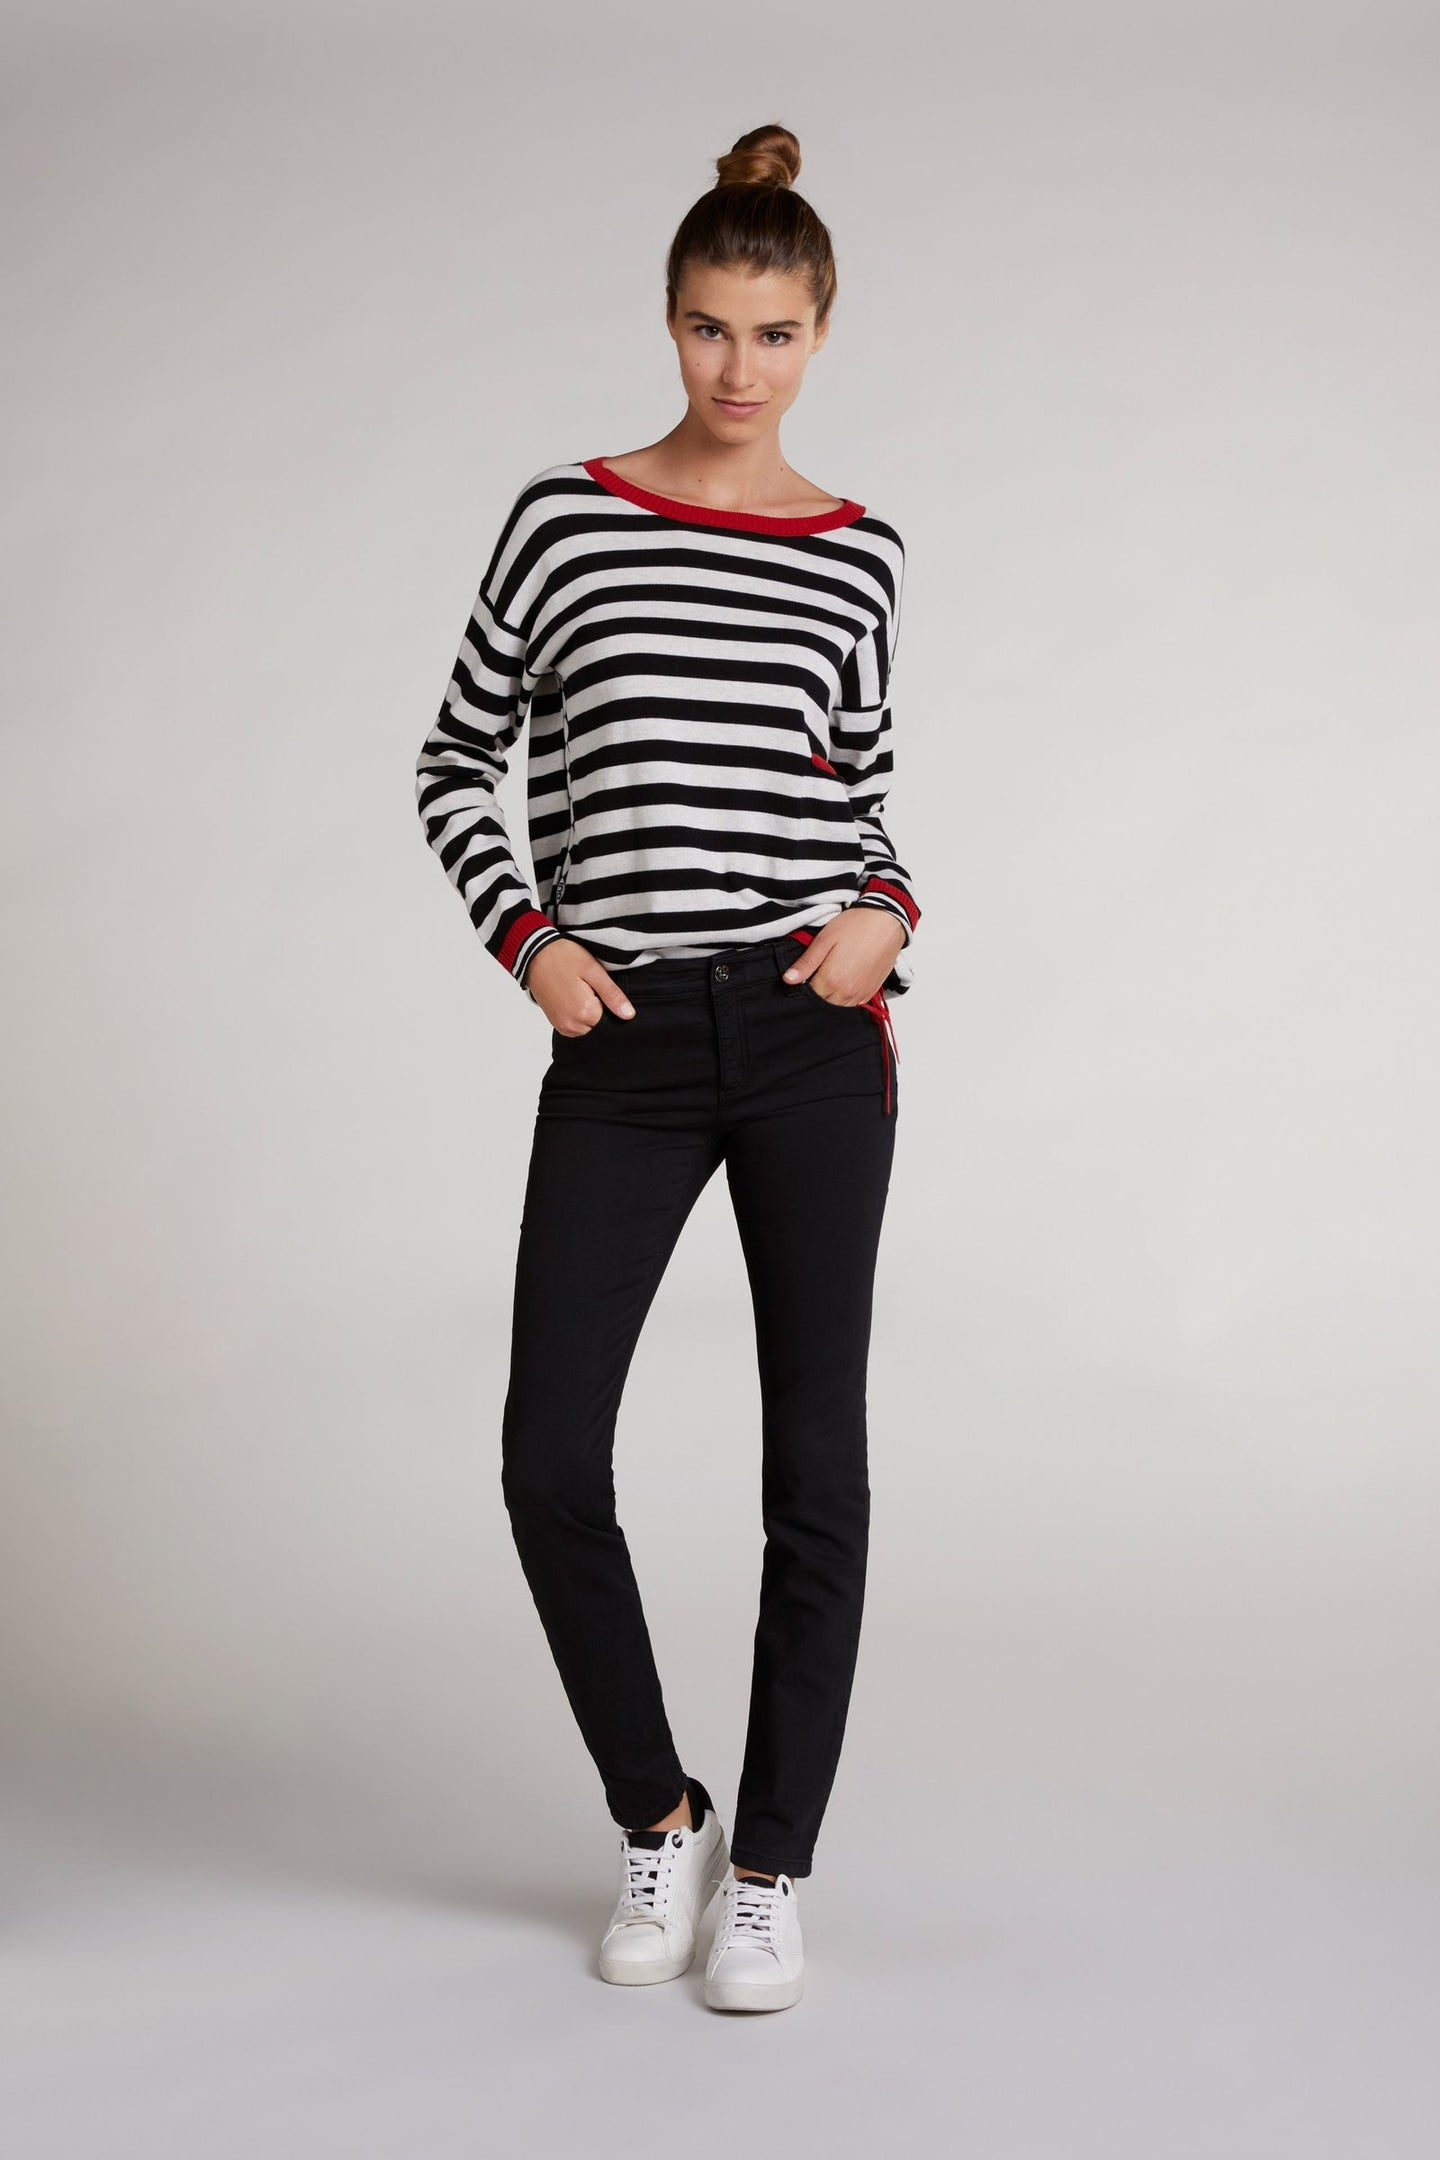 Oui Black Baxtor Slim Fit Jeggings